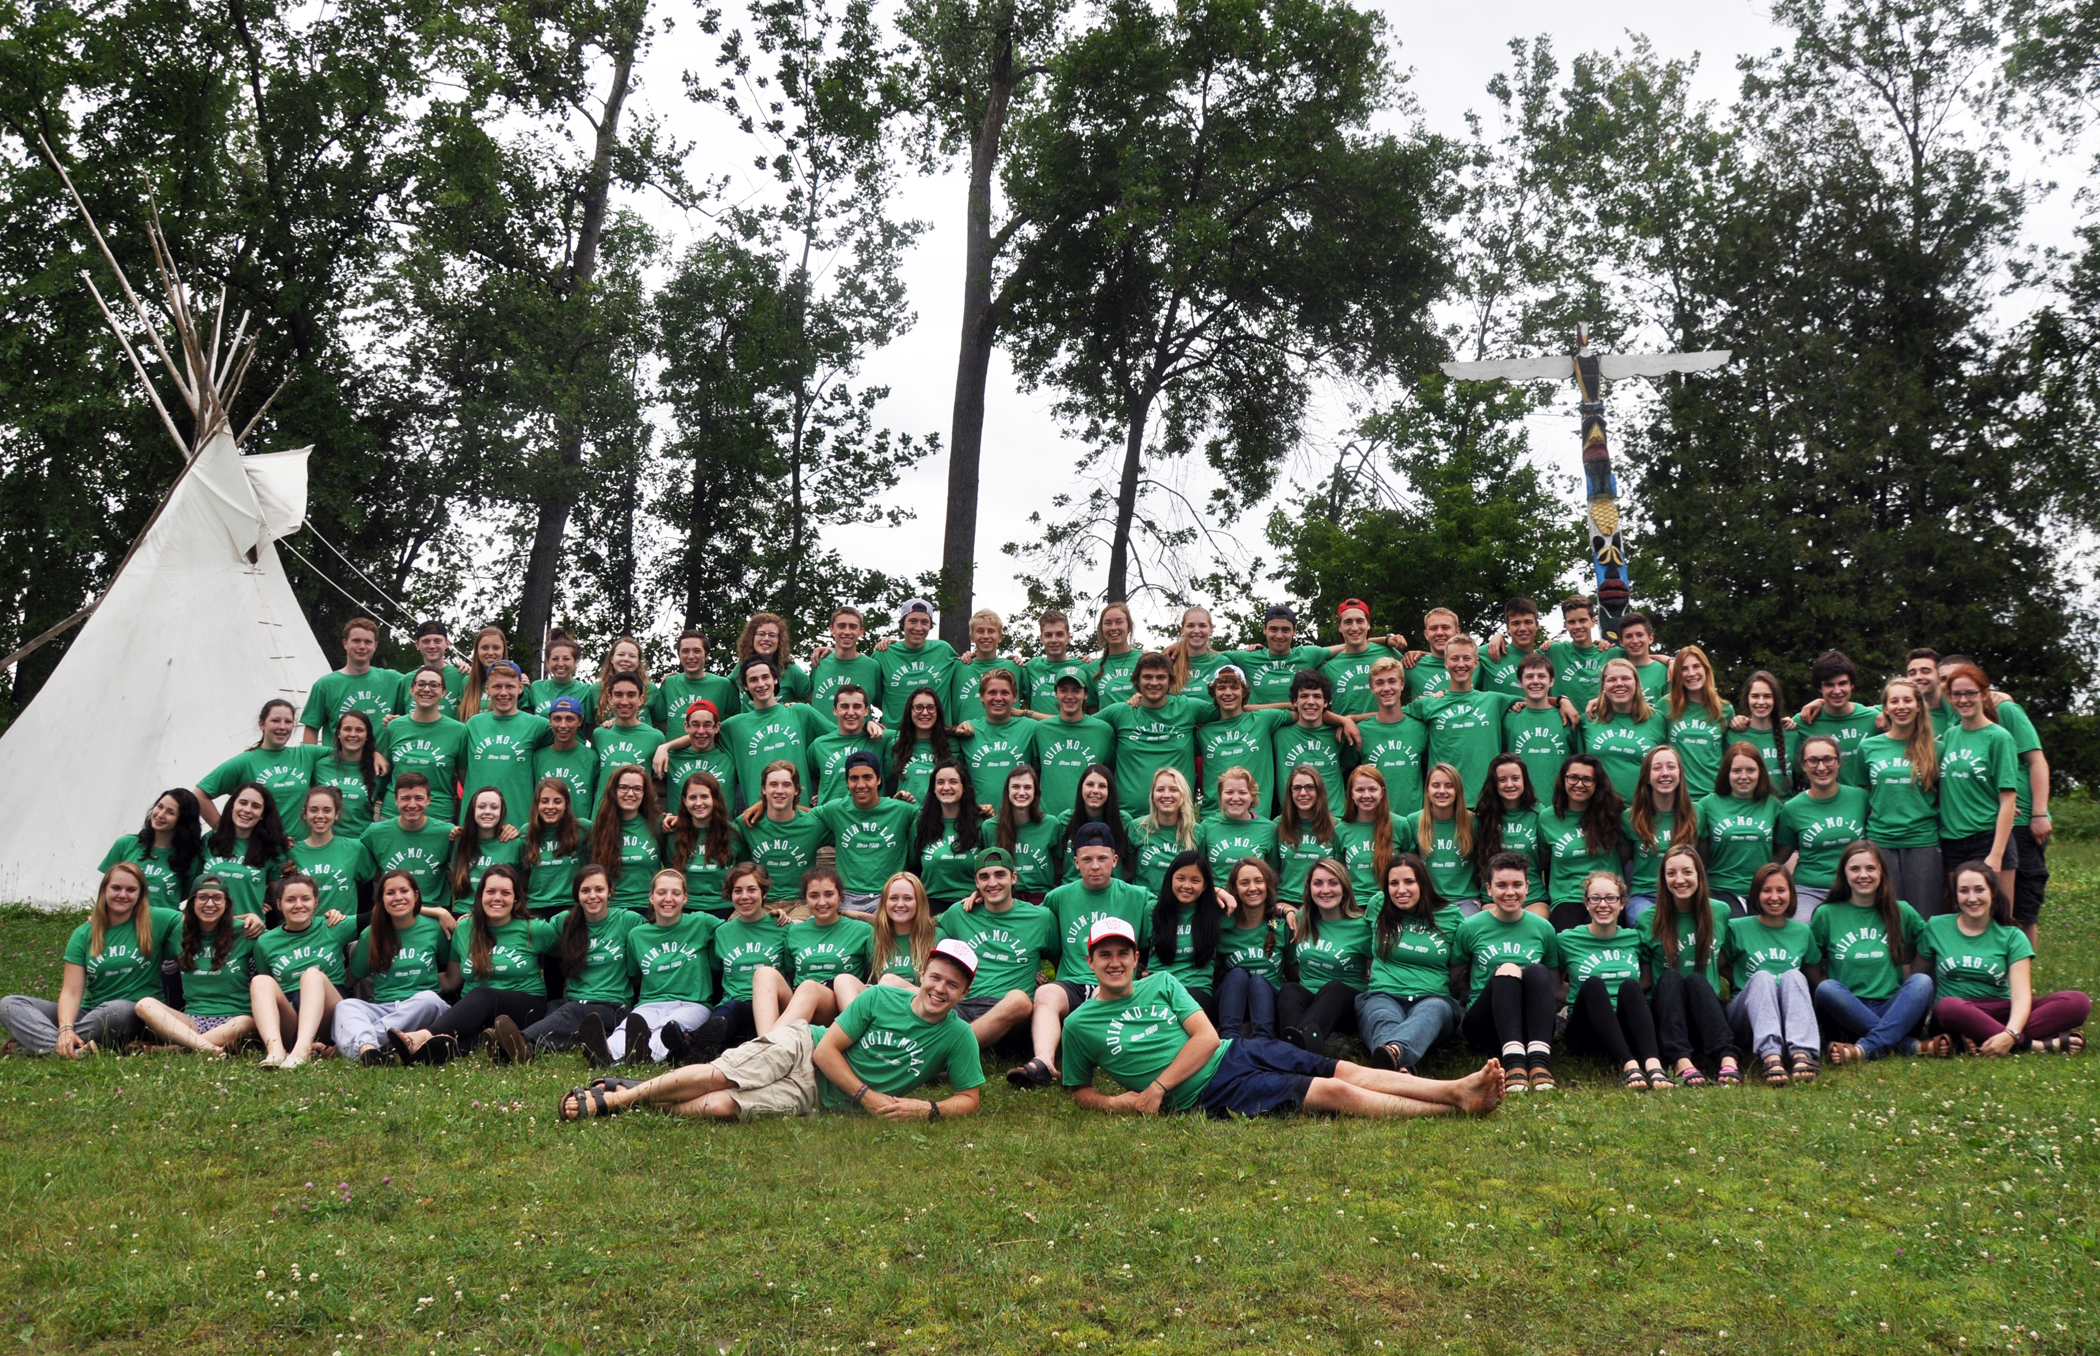 2014 QUIN-MO-LAC STAFF PHOTO.jpg